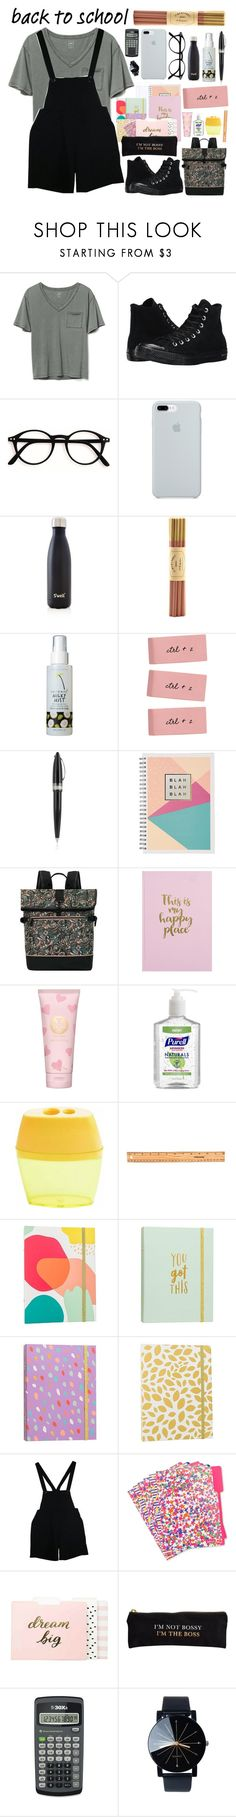 """""""Go Back-to-School Shopping!"""" by basmahahmed ❤ liked on Polyvore featuring Gap, Converse, ETUÍ, S'well, Fine & Candy, too cool for school, Pineider, Sakroots, Tory Burch and Fiskars"""